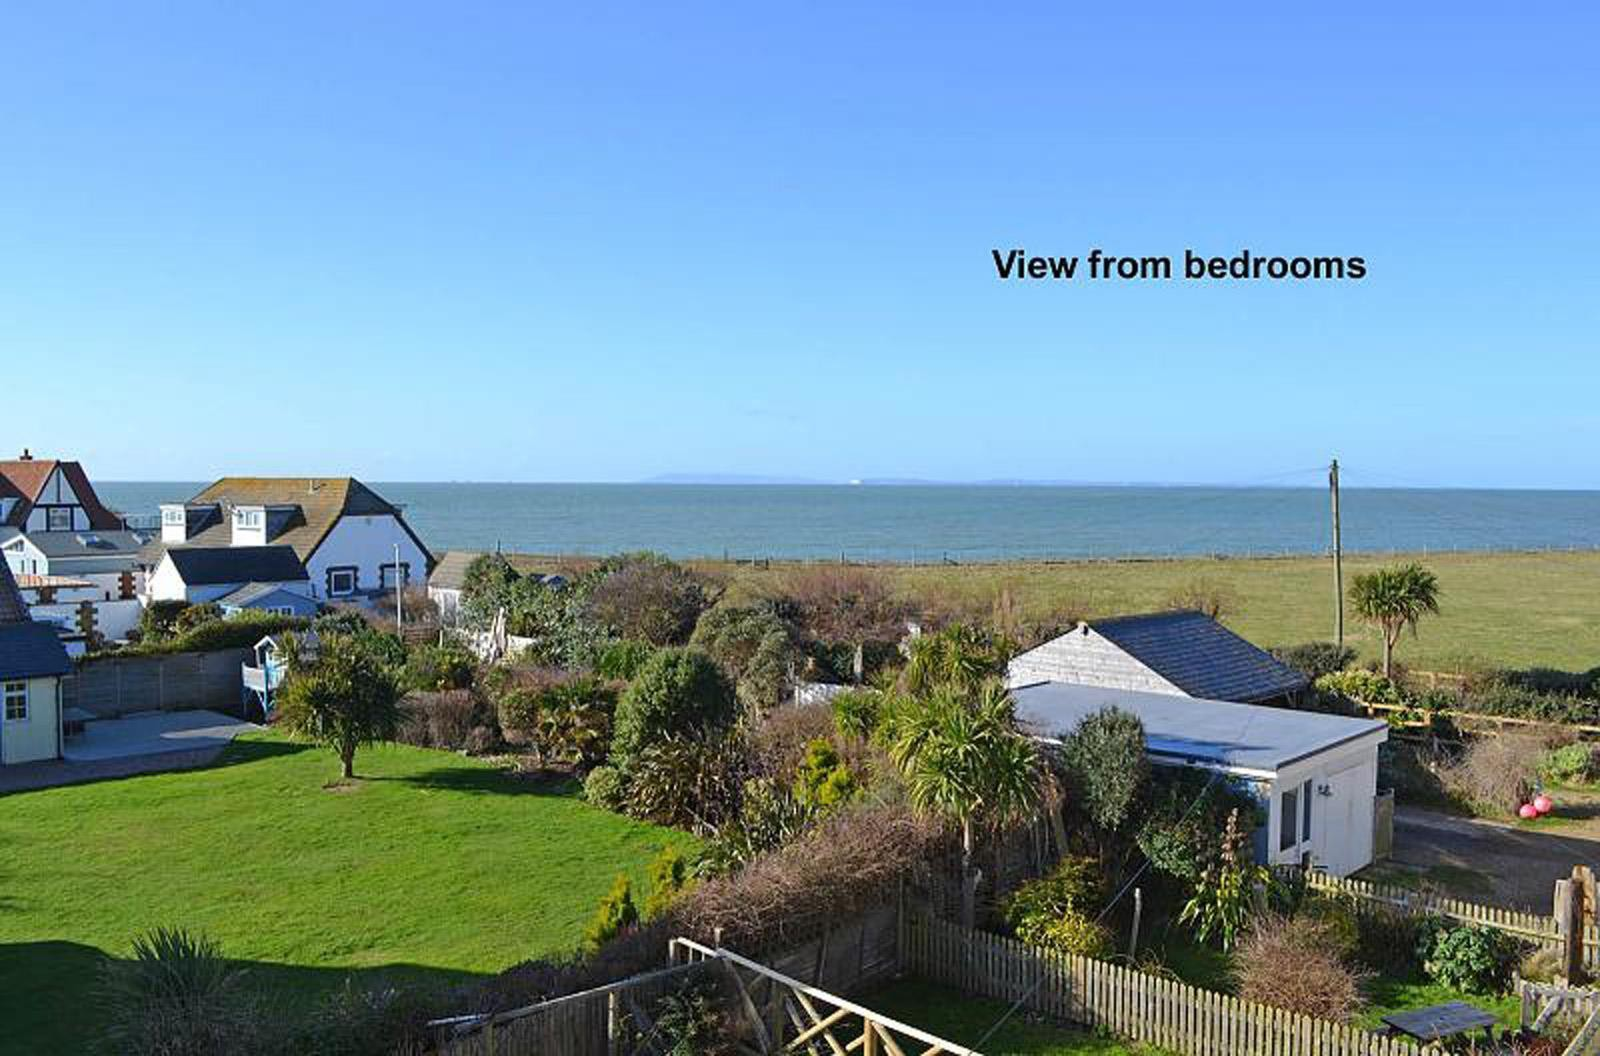 Sea View From Bedrooms